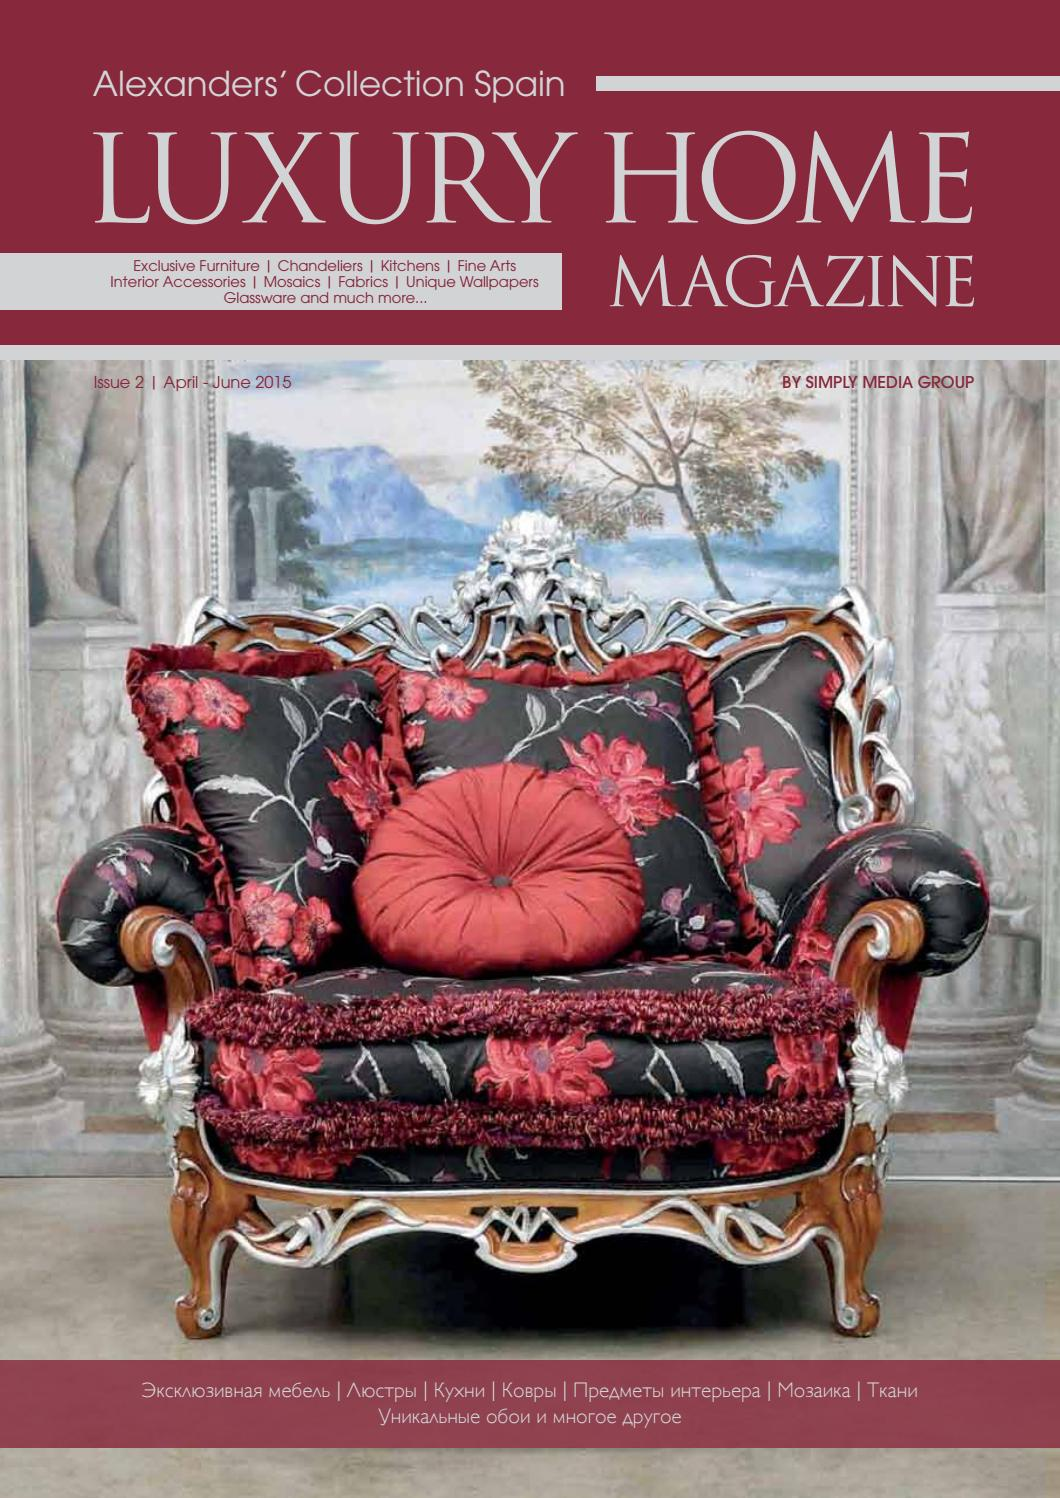 Alexanders Collection Spain by Billions Luxury Portal - issuu